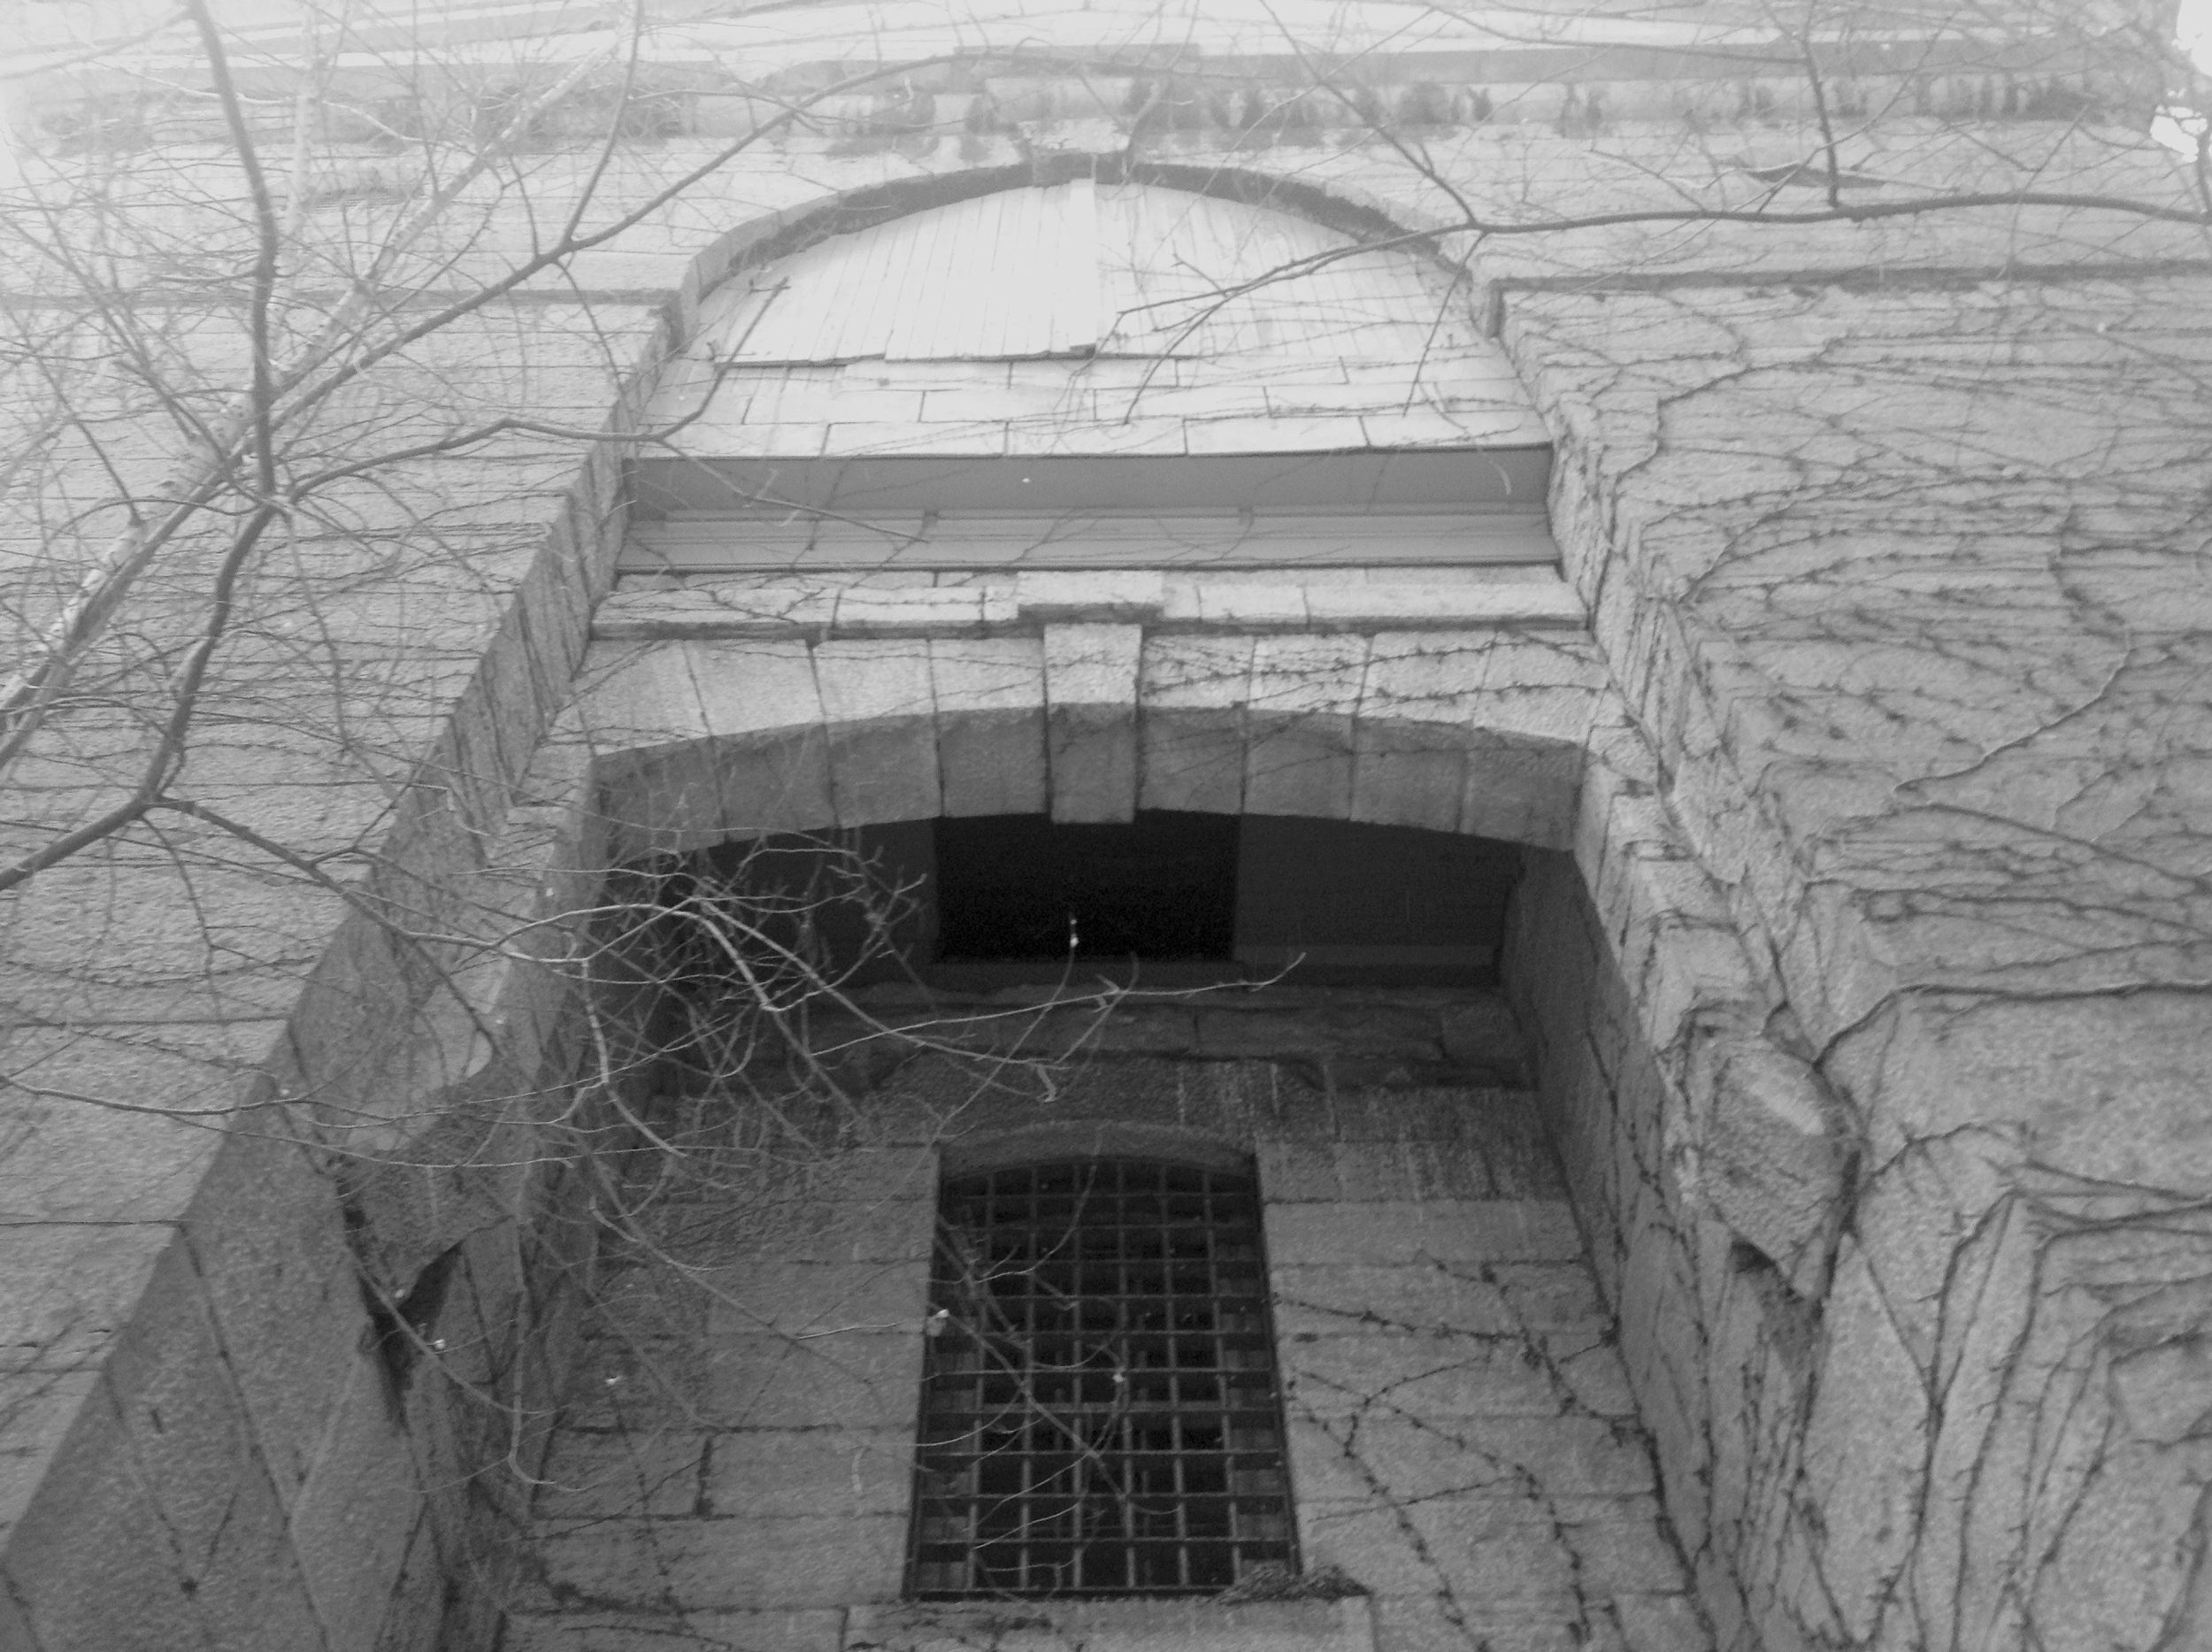 Looking up at the Gallows from the courtyard.